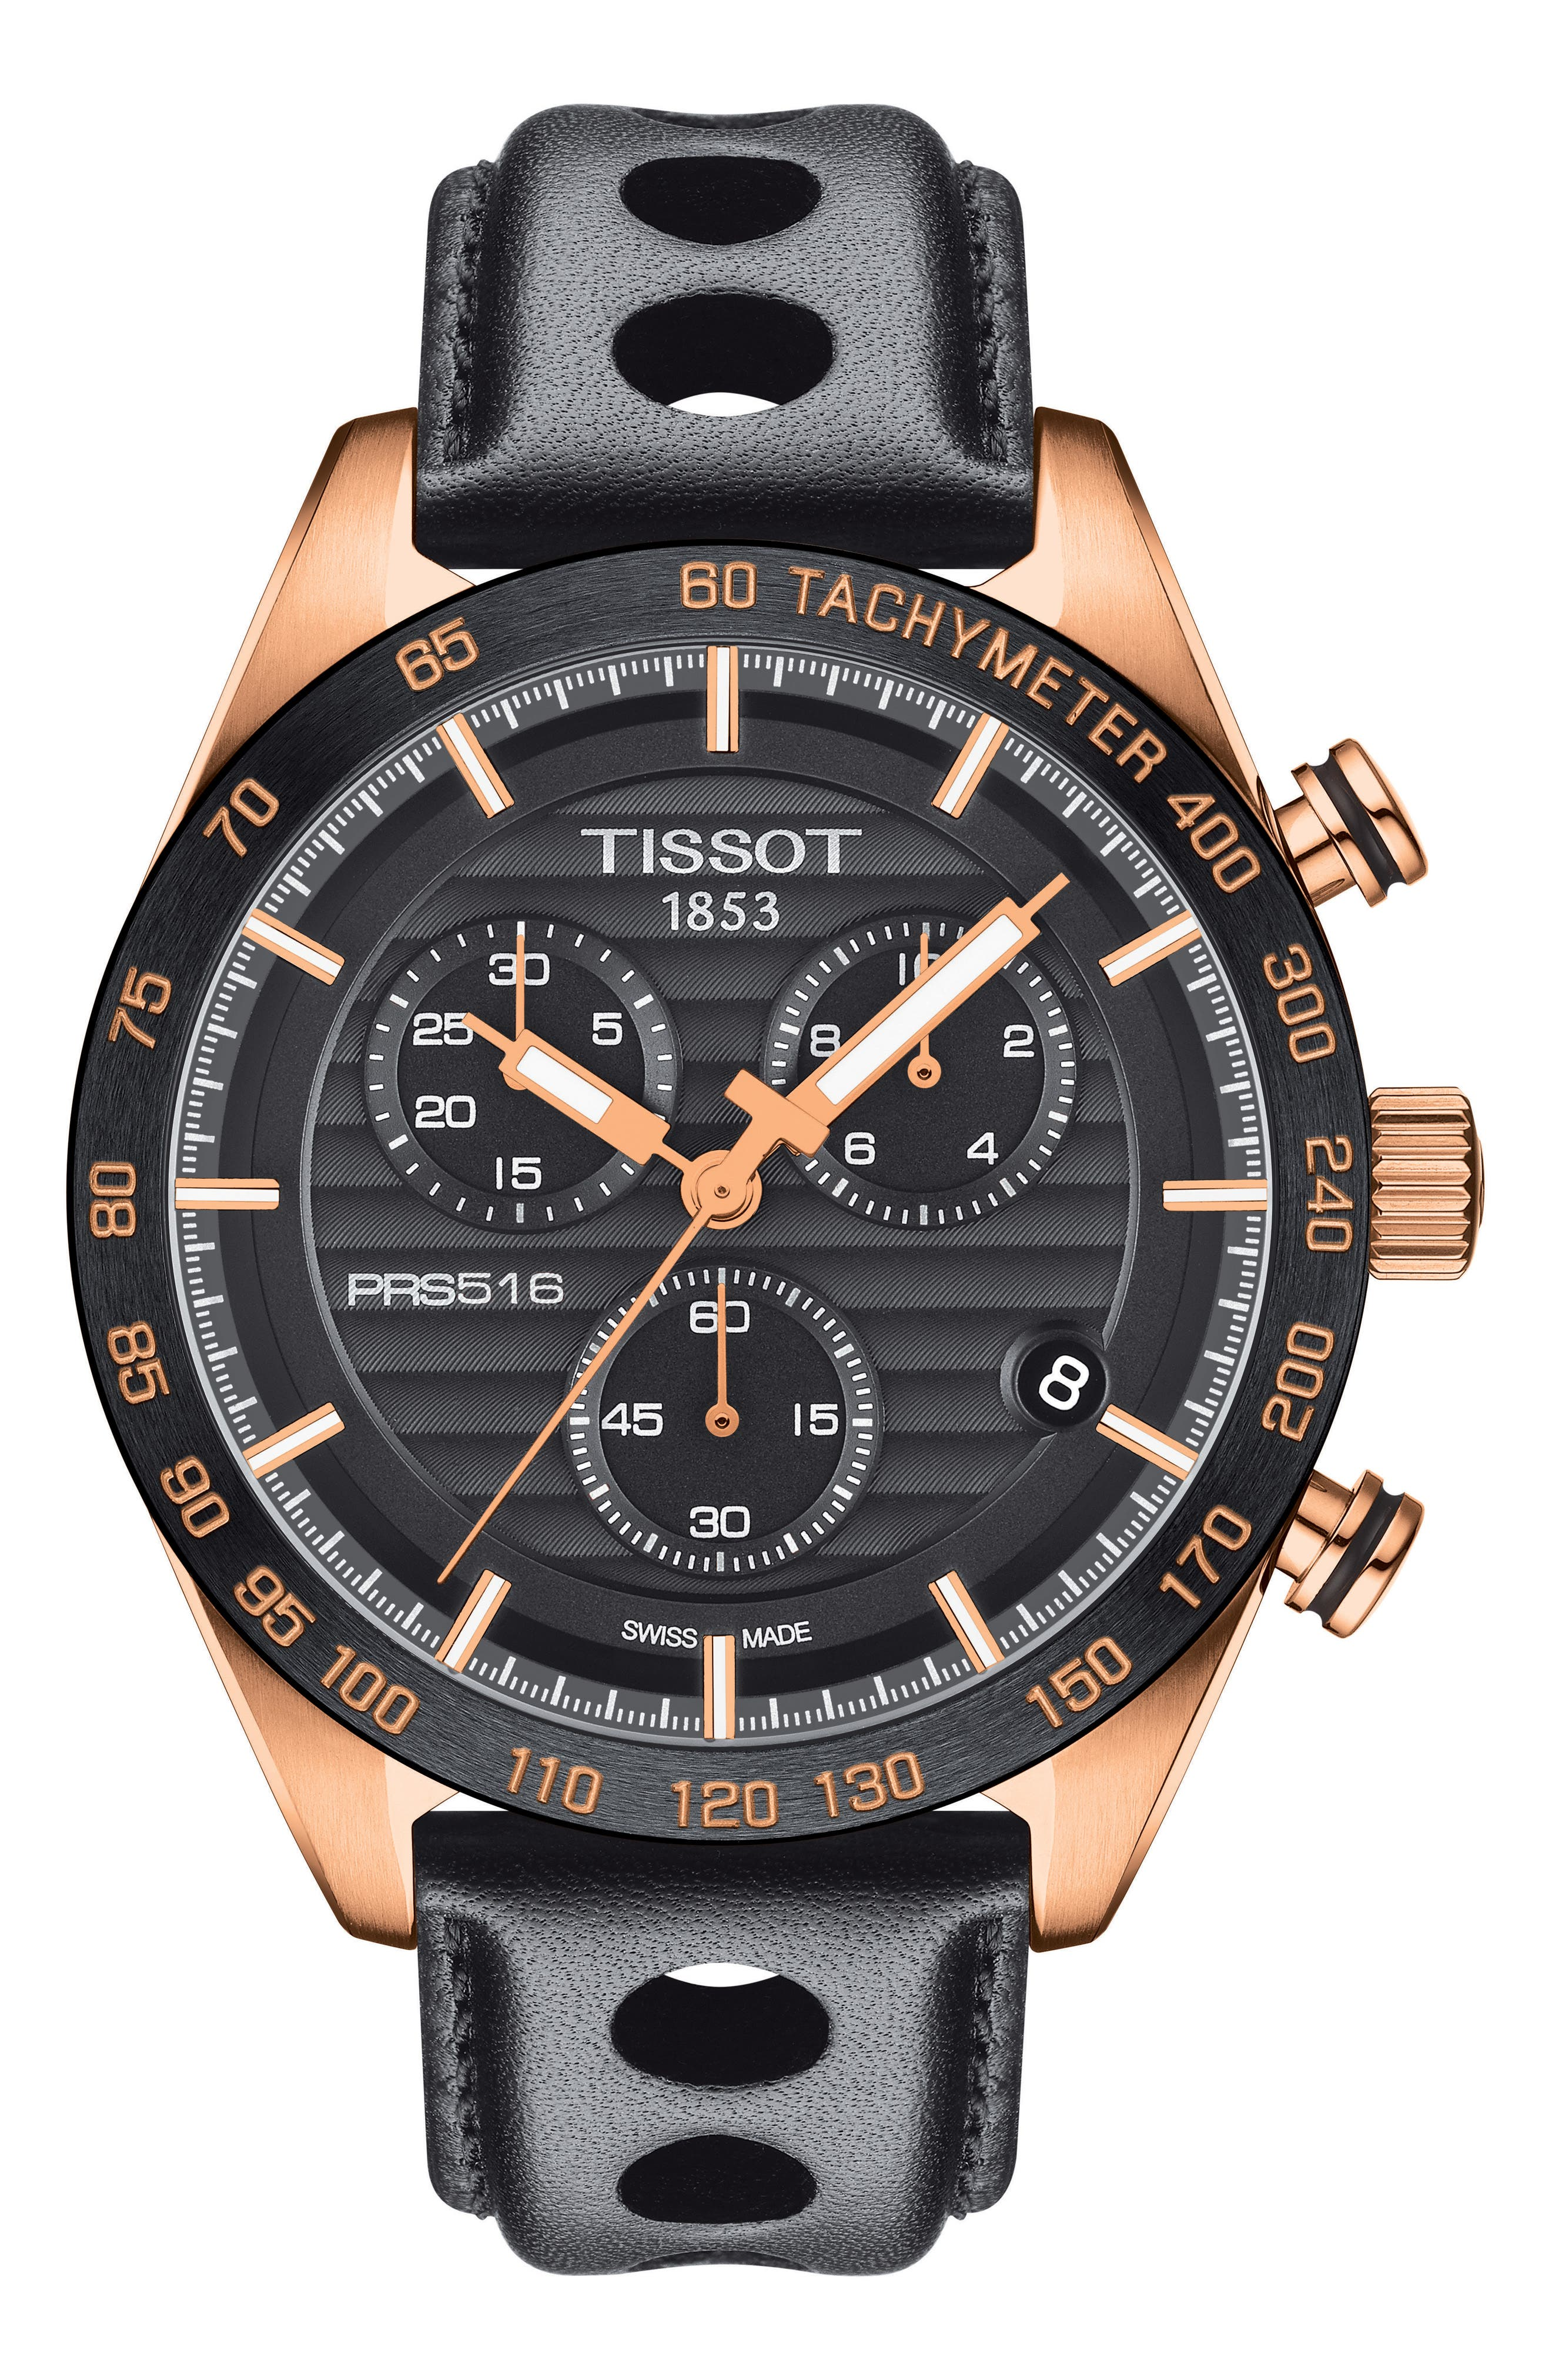 Main Image - Tissot PRS 516 Chronograph Leather Strap Watch, 42mm